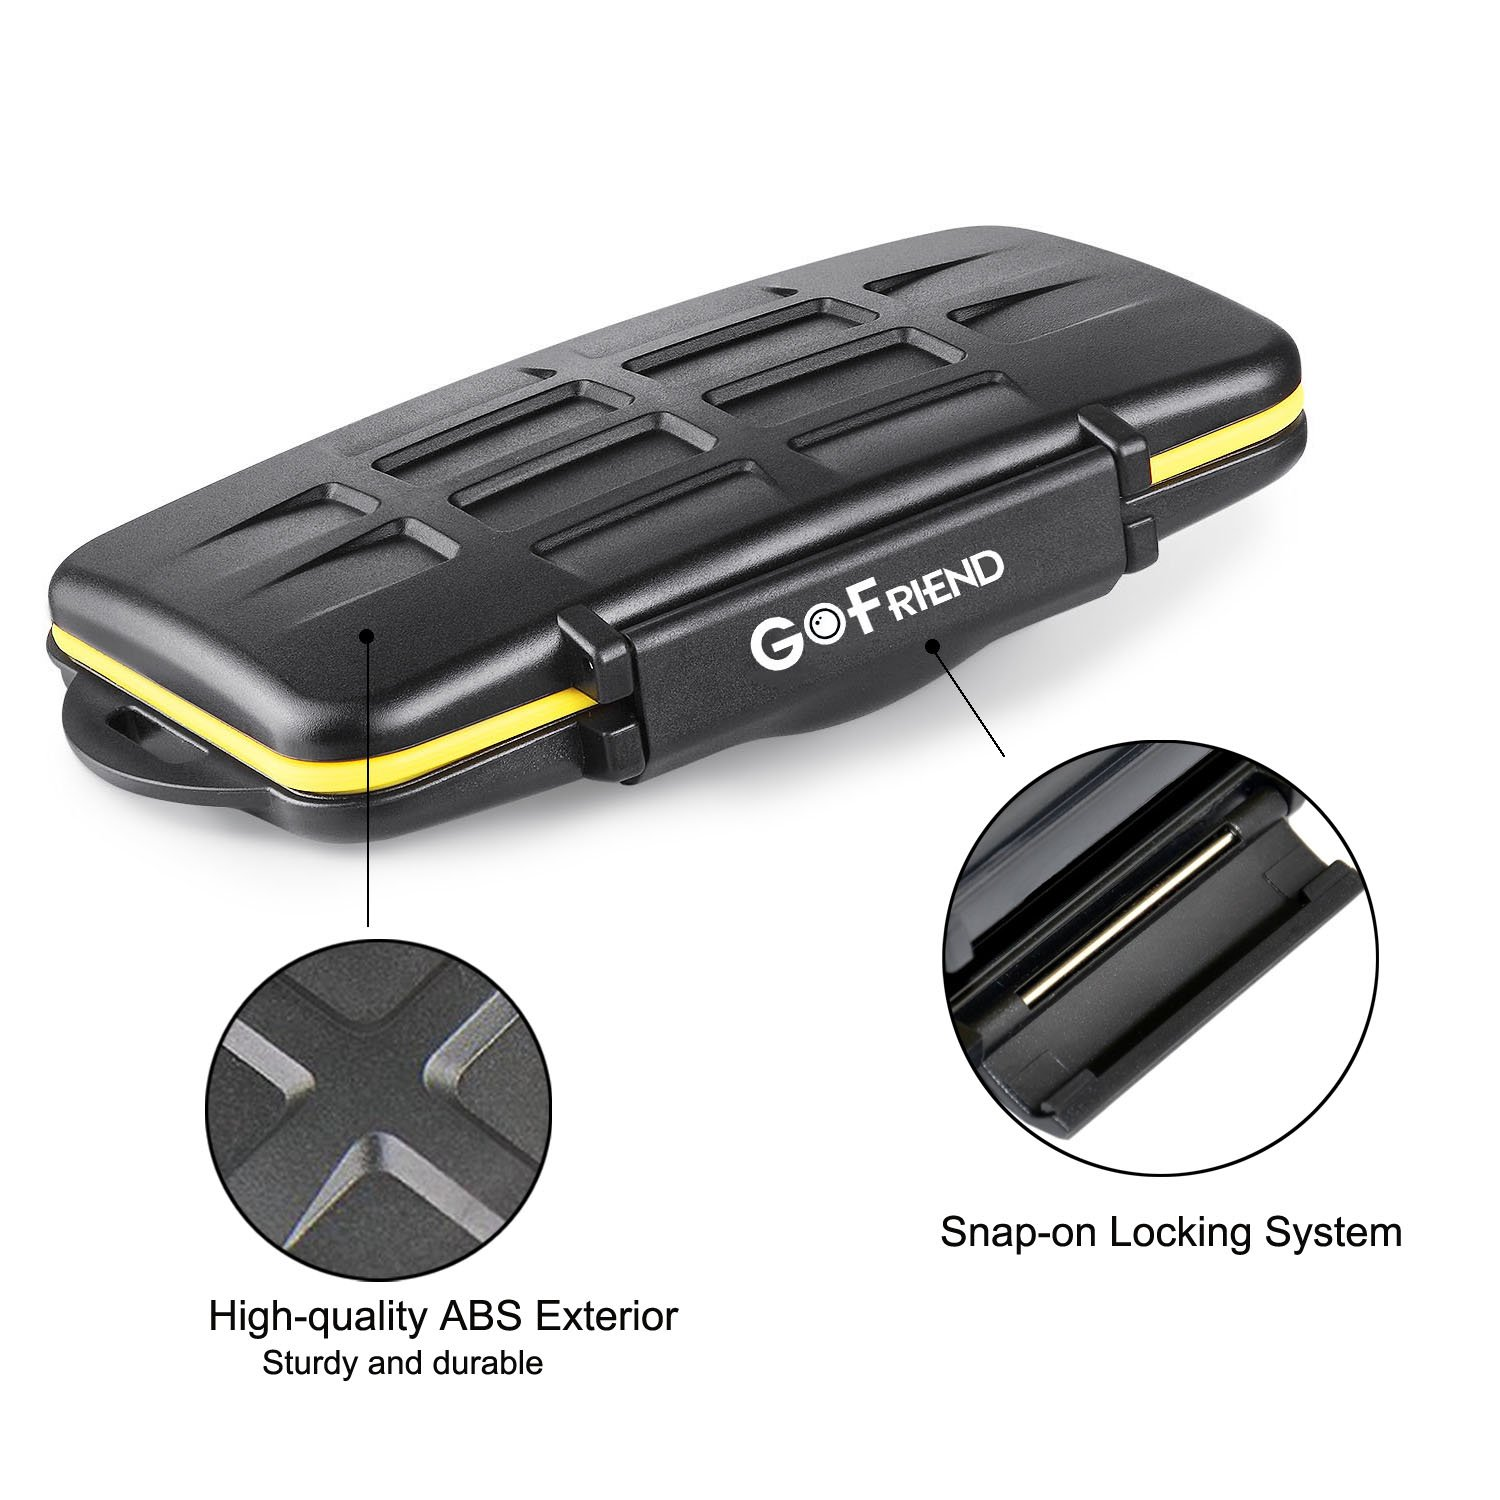 GoFriend Water-Resistant 24 Slots Memory Card Carrying Cases Professional Anti-shock Holder Storage SD SDHC SDXC and Micro SD TF Cards Protector Cover With Carabiner & Card Reader by GoFriend (Image #4)